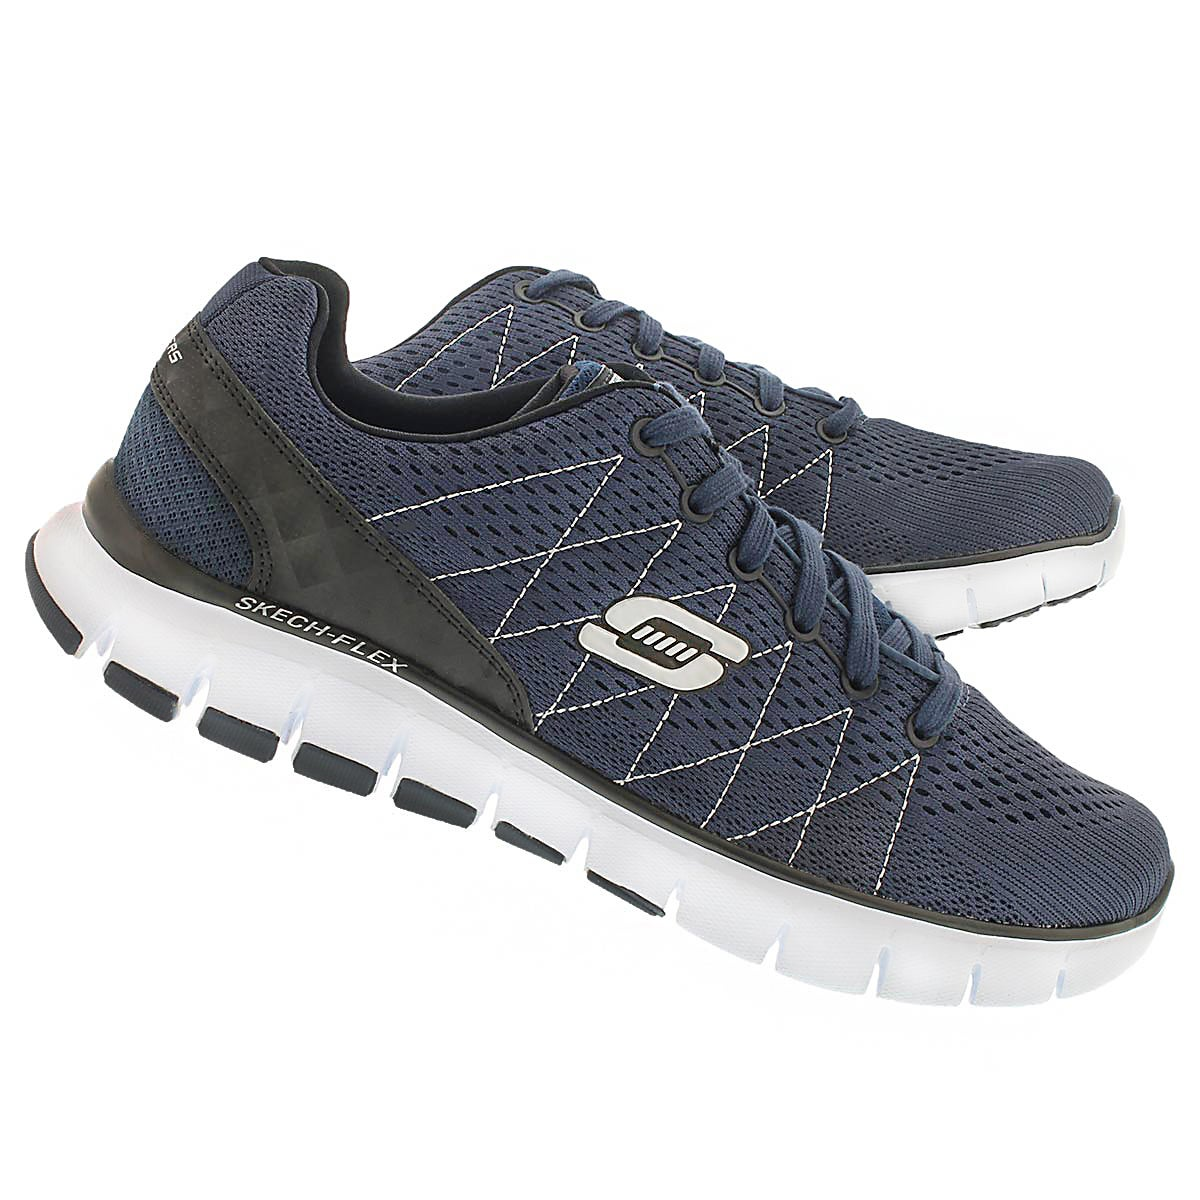 Mns Skech-Flex navy lace up sneaker